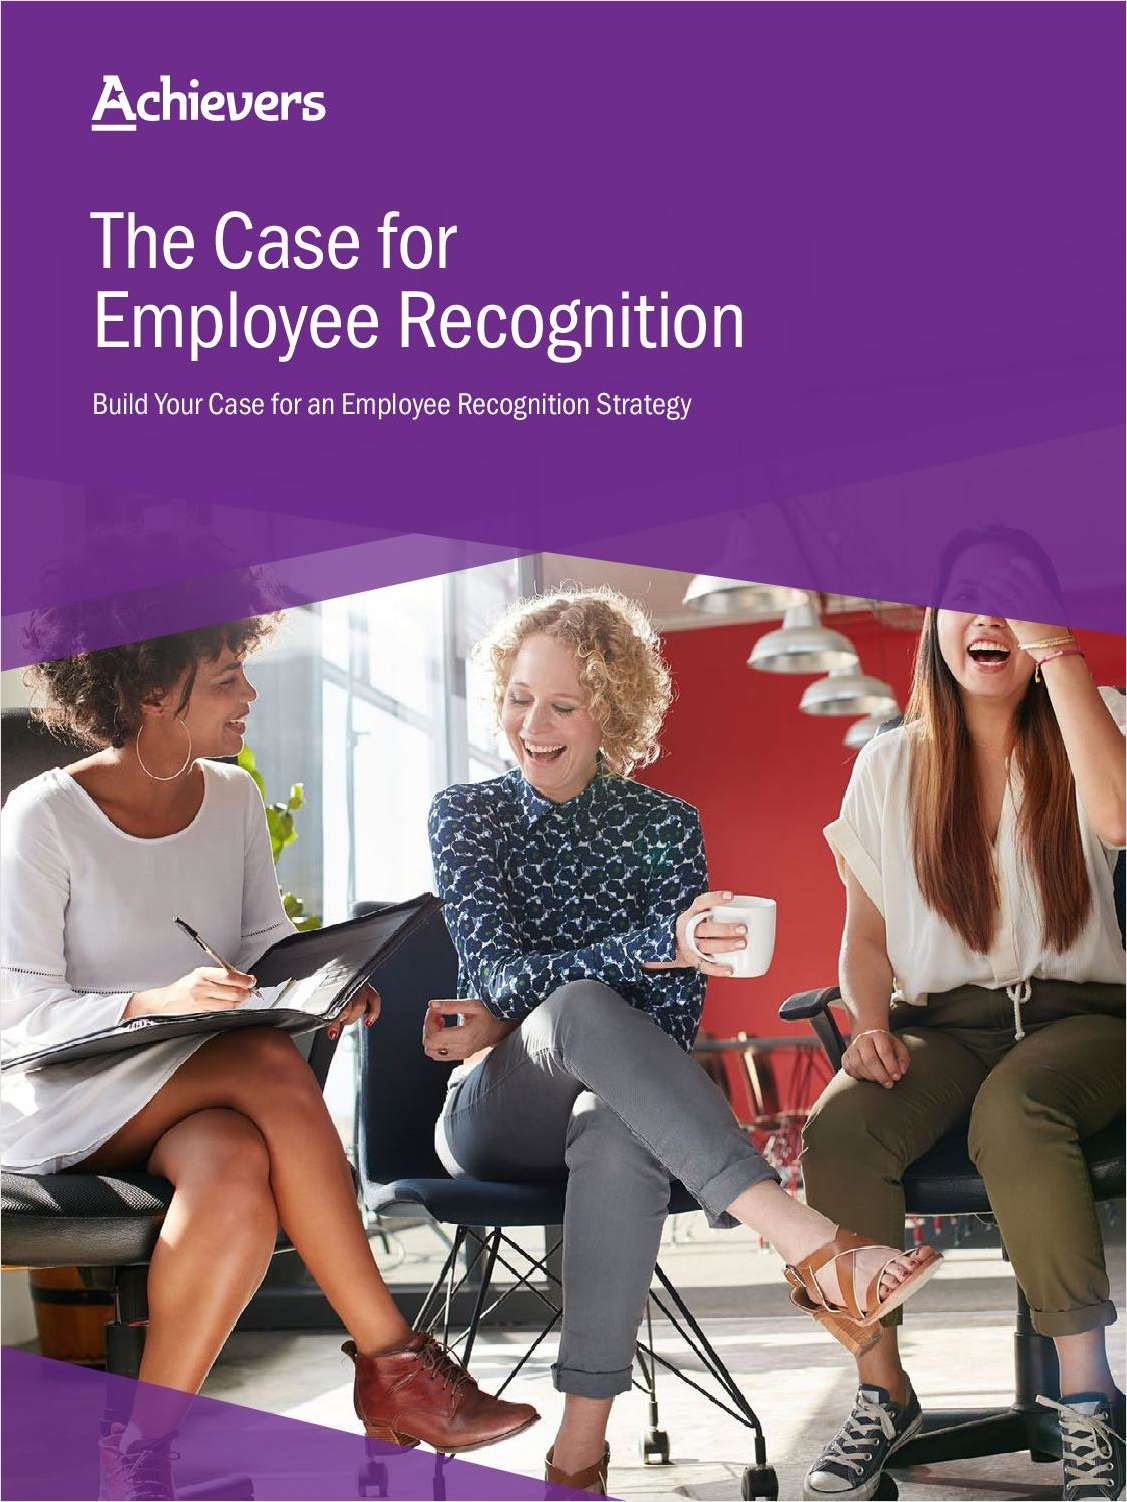 The Case for Employee Recognition